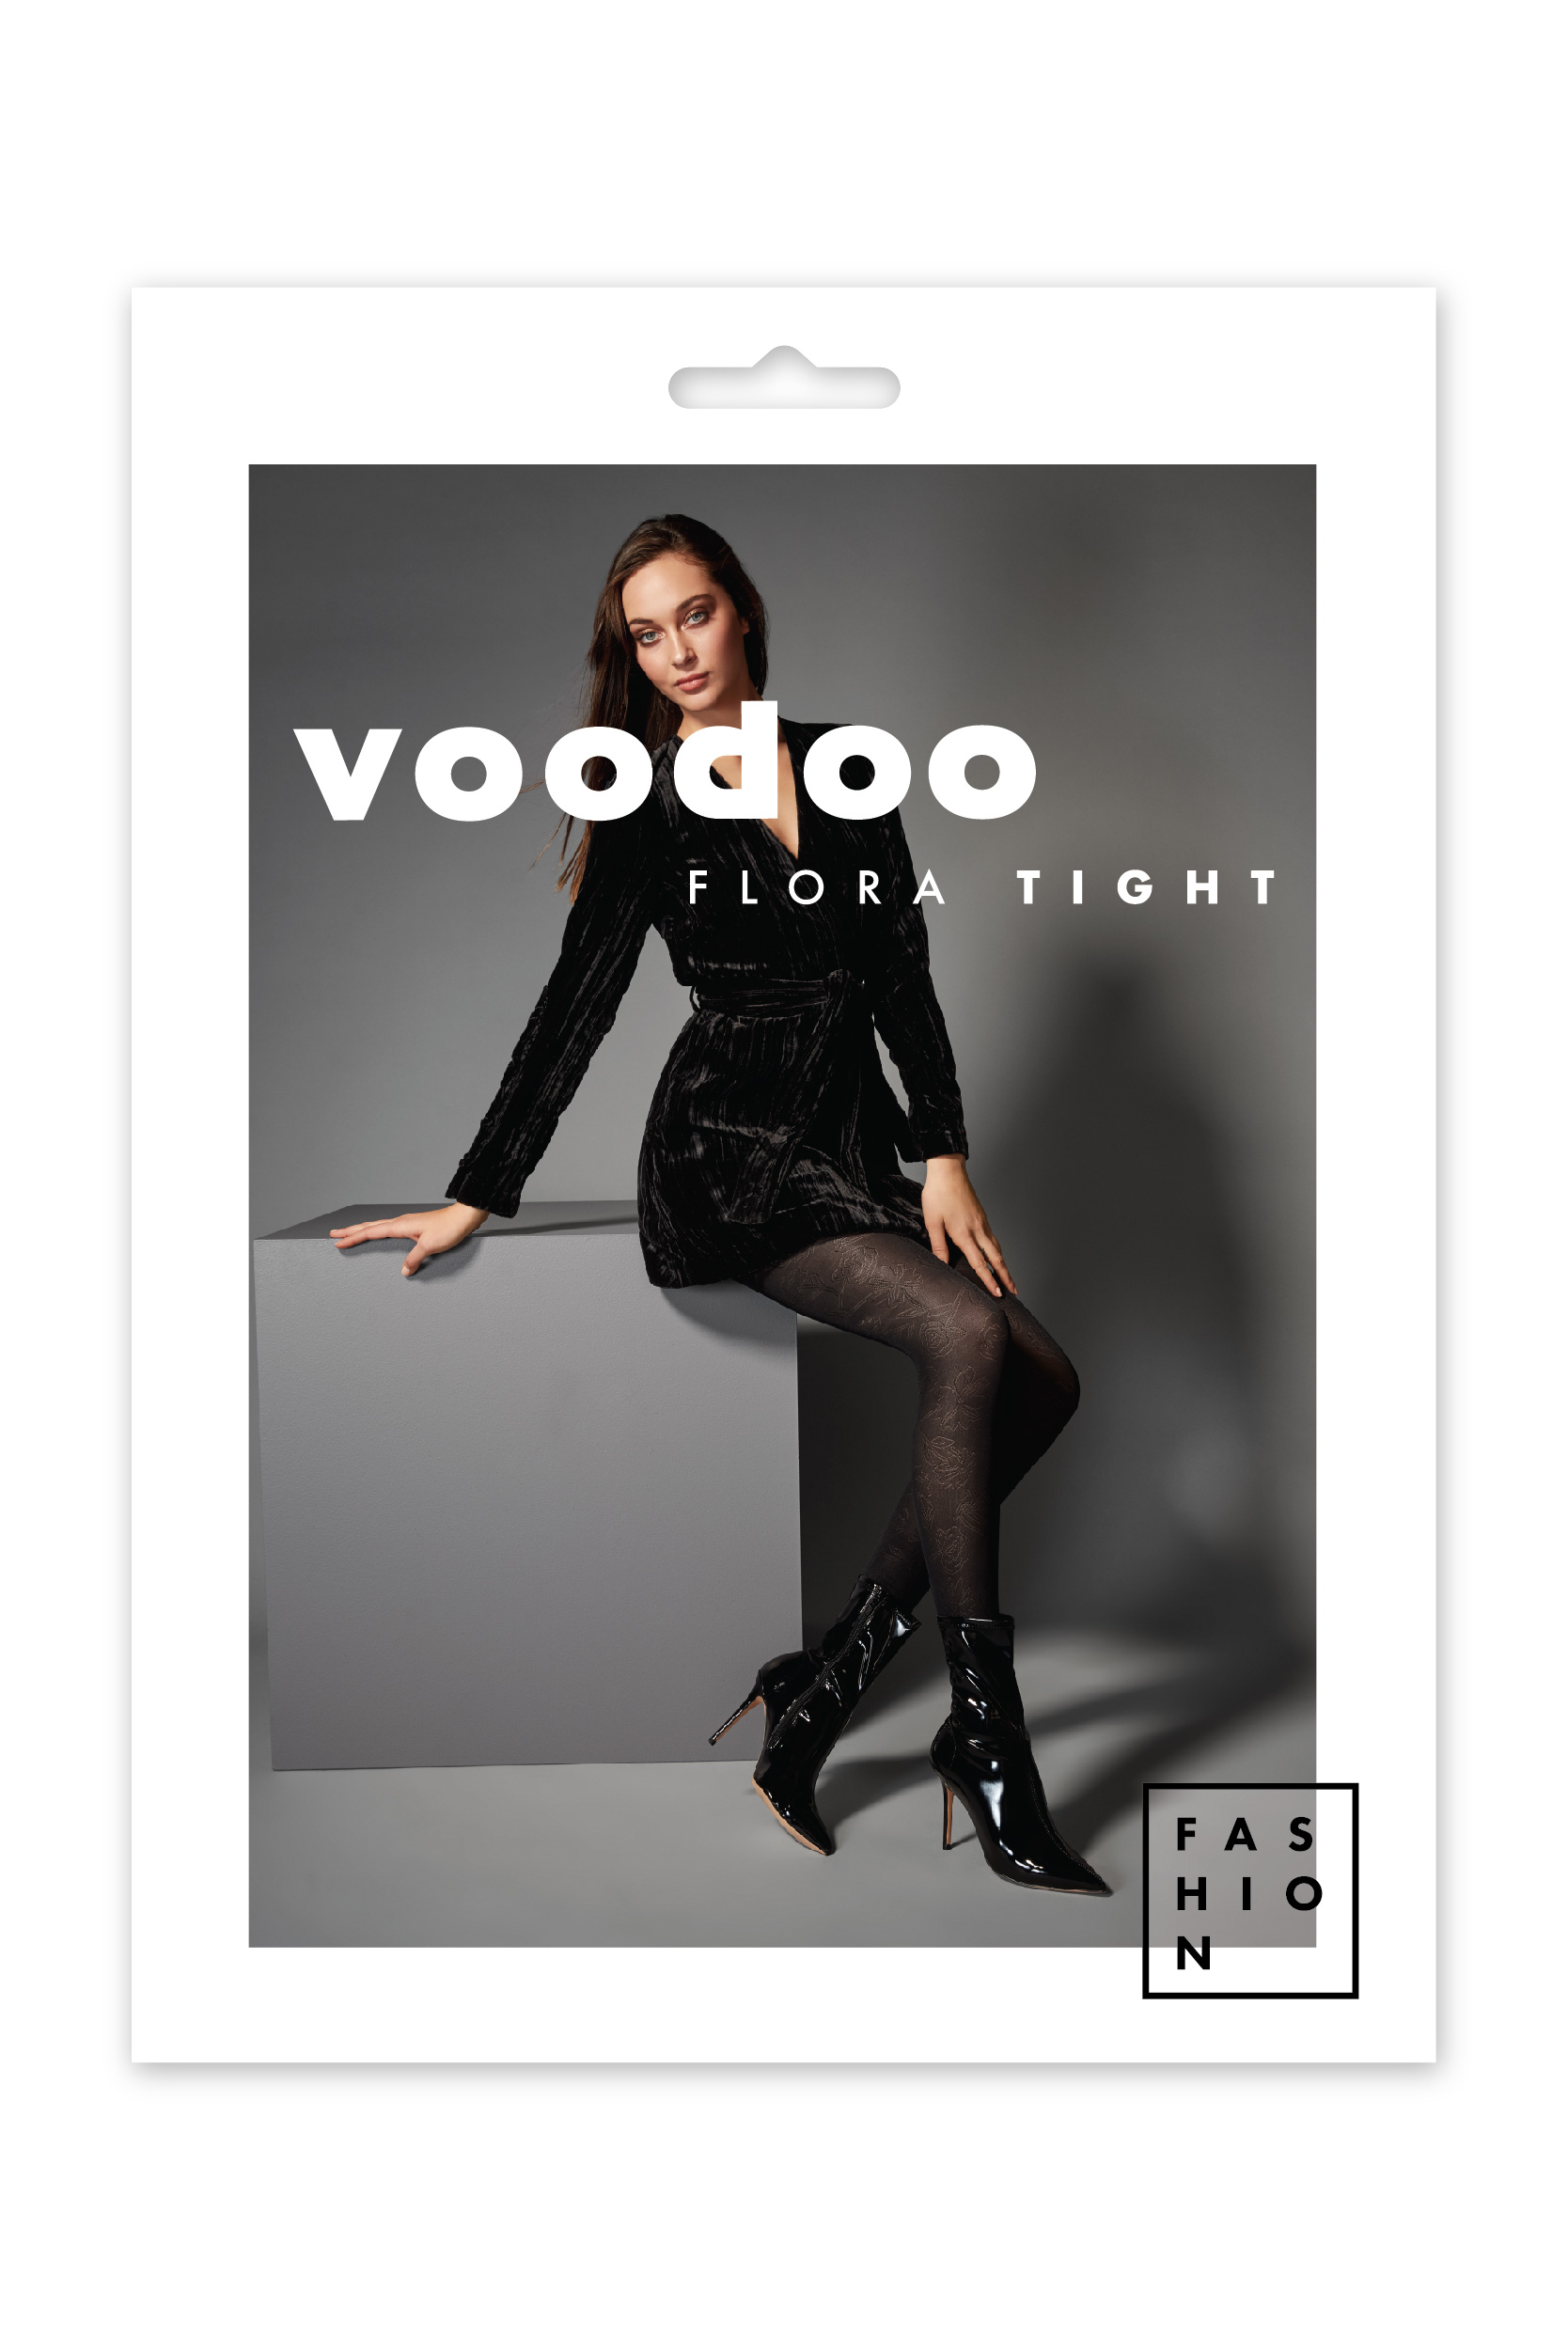 DRESS FOR SUCCESS WITH VOODOO FLORA TIGHTS IN BLACK